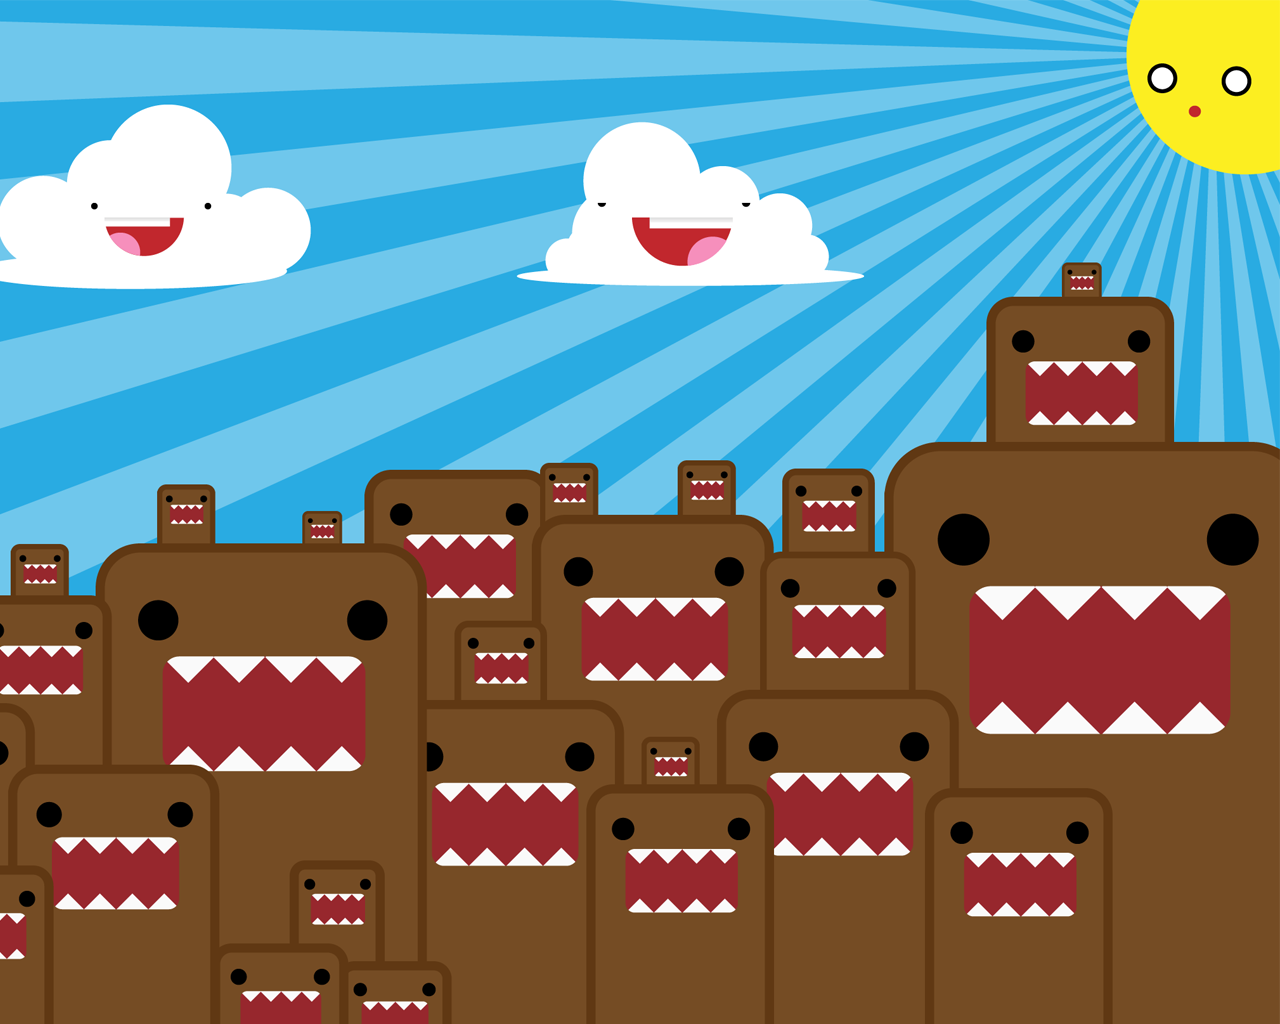 Fabulousity DOMO KUN CRAZY 1280x1024